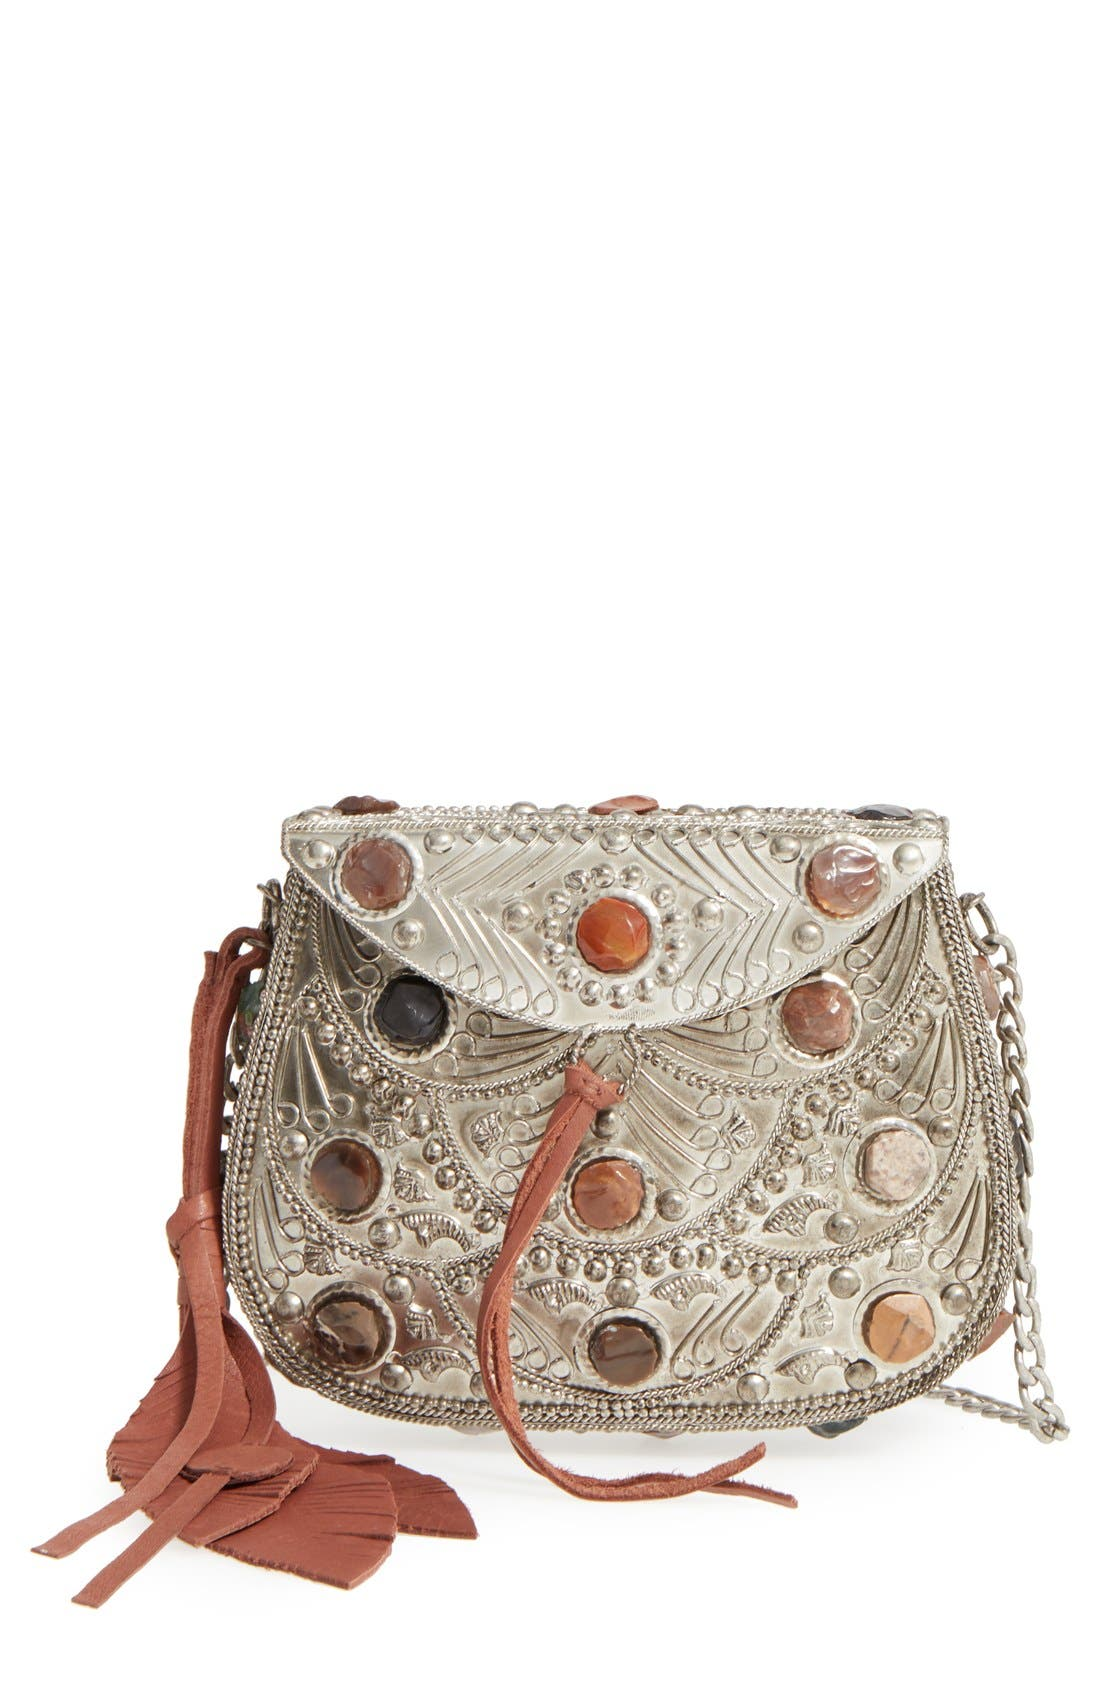 SAM EDELMAN Mini Thana Metal Crossbody Bag, Main, color, 044